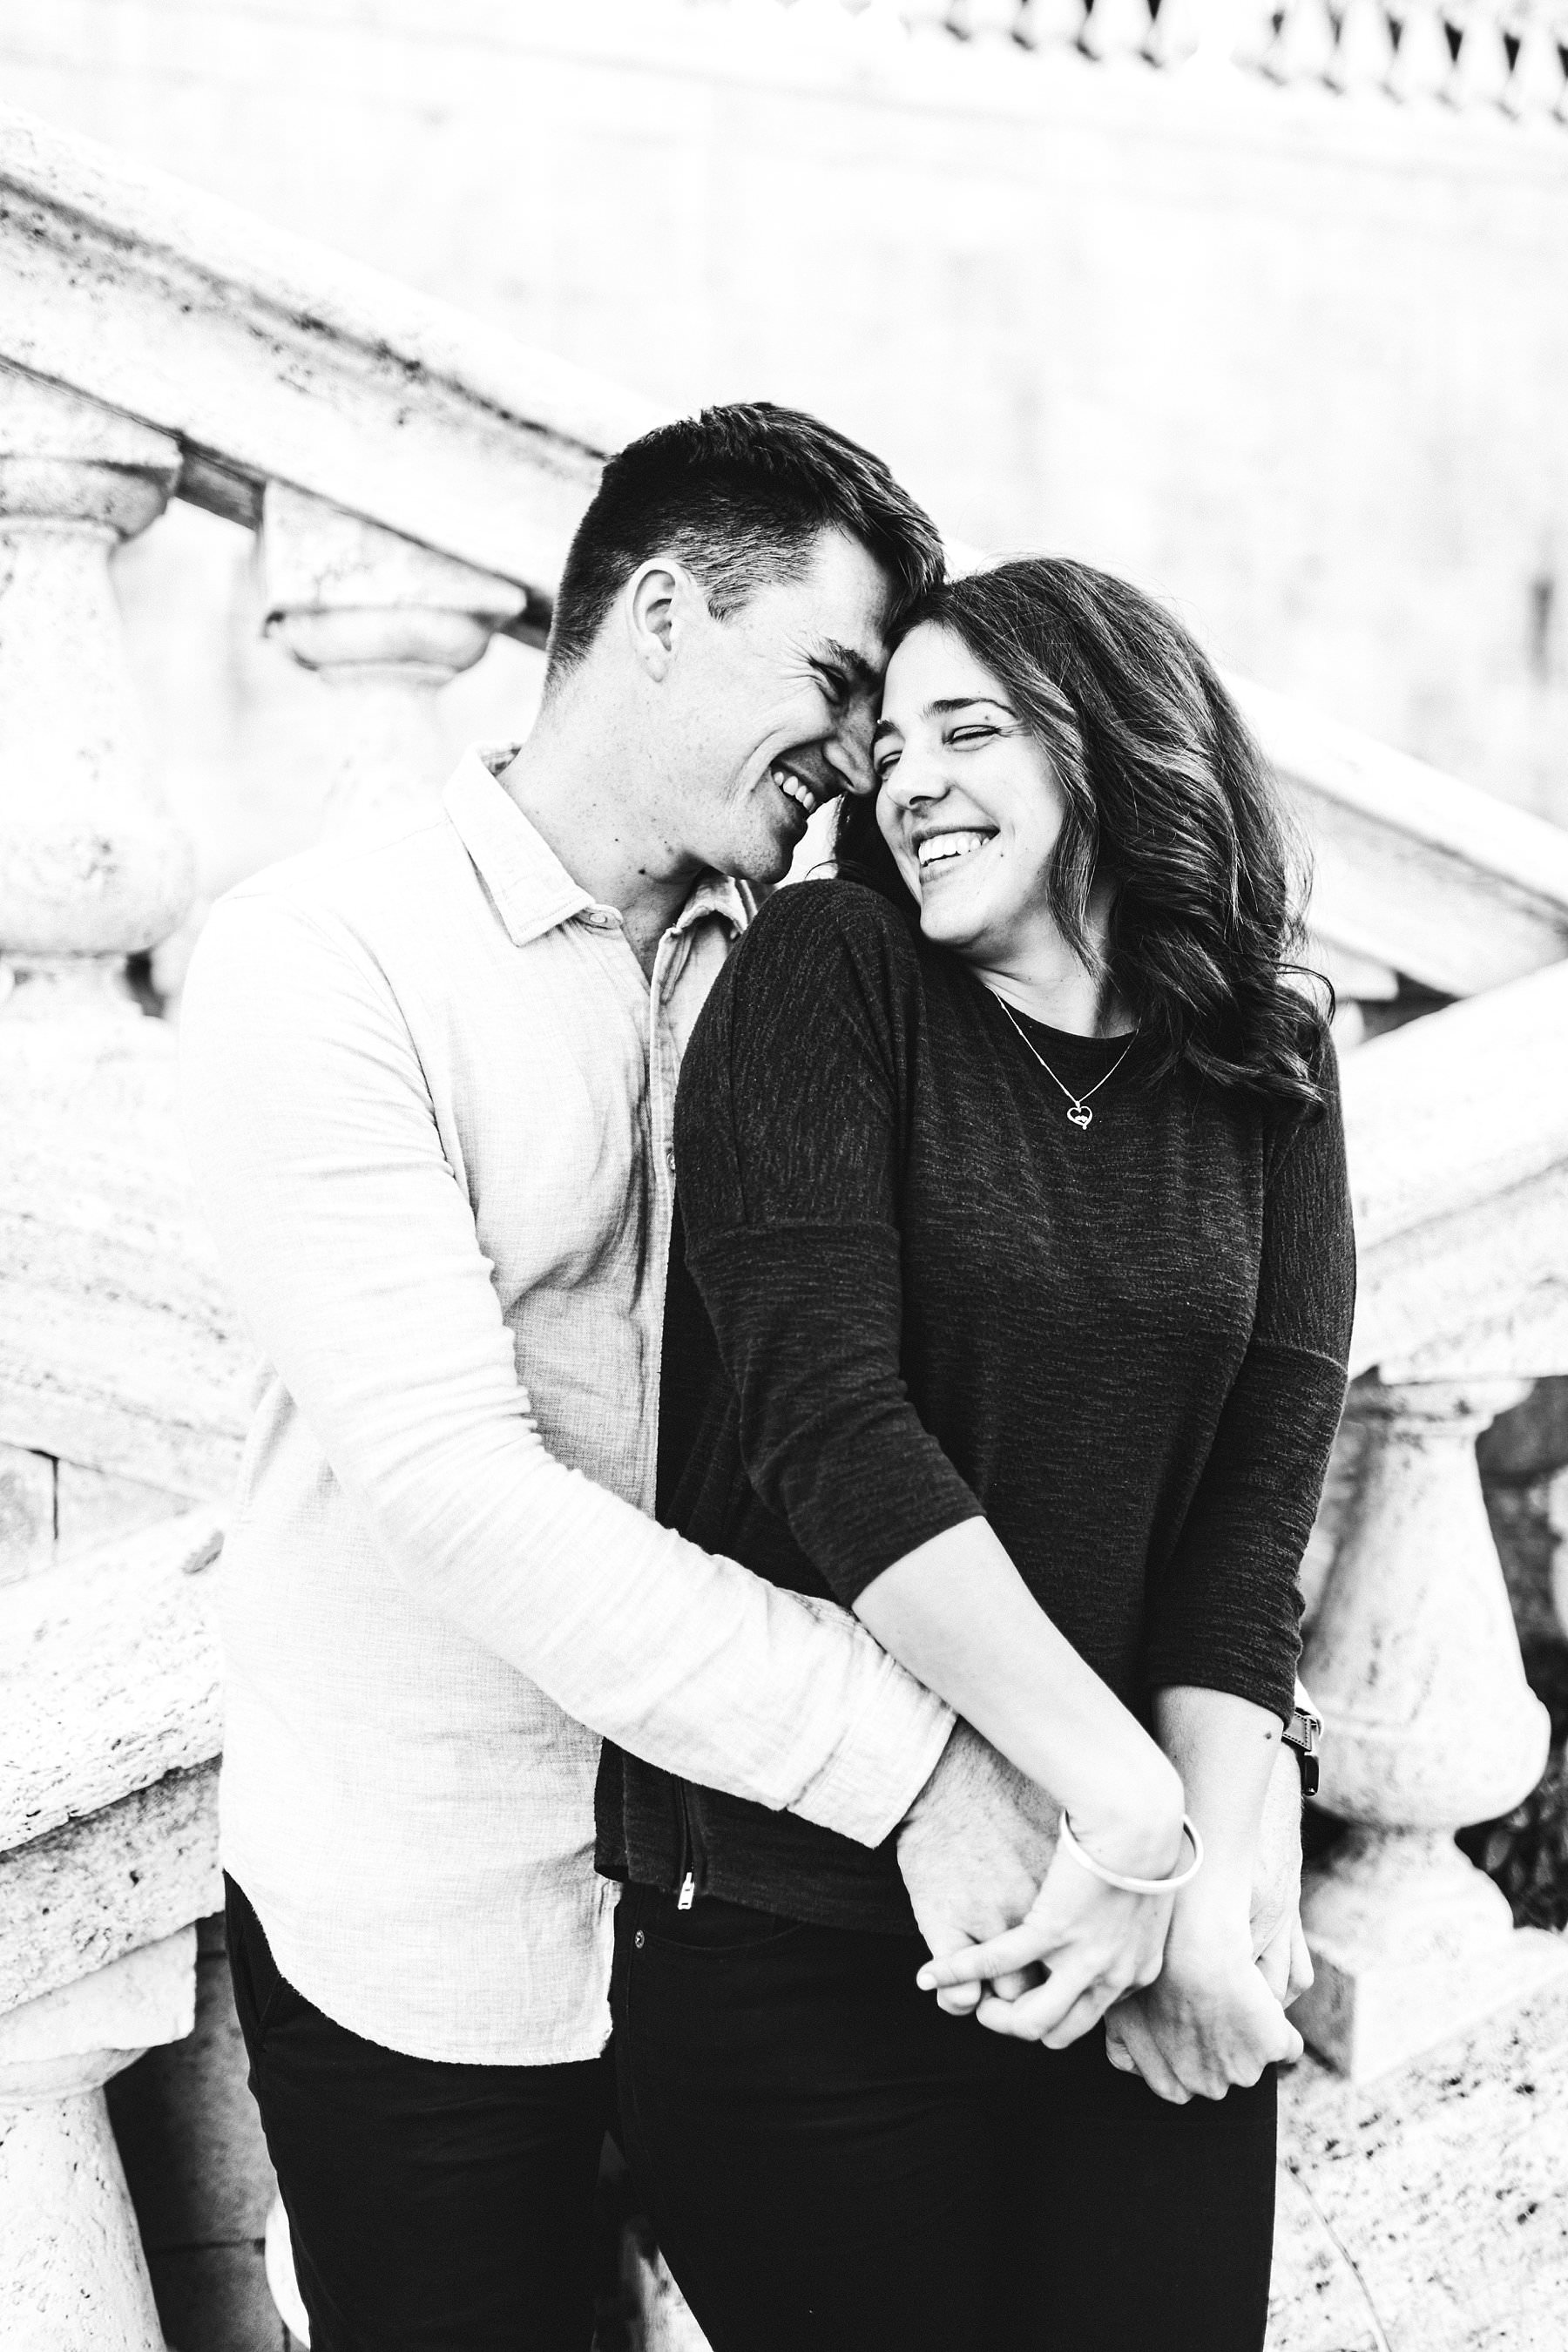 Another exciting genuine and smiling couple portrait photo during the engagement photo tour in Florence during a unique Christmas holiday